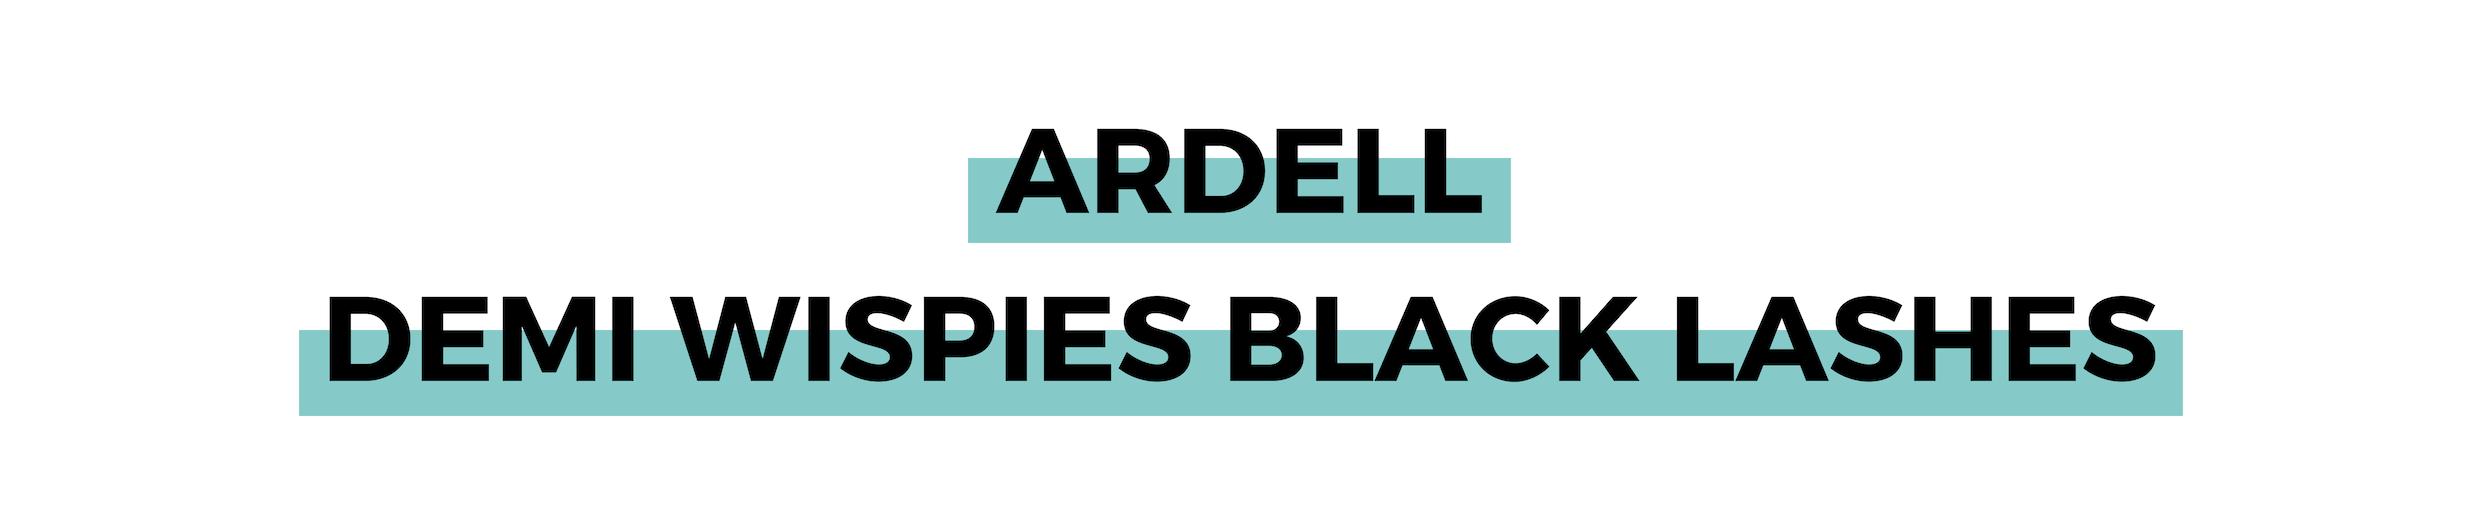 ARDELL DEMI WISPIES BLACK LASHES.png